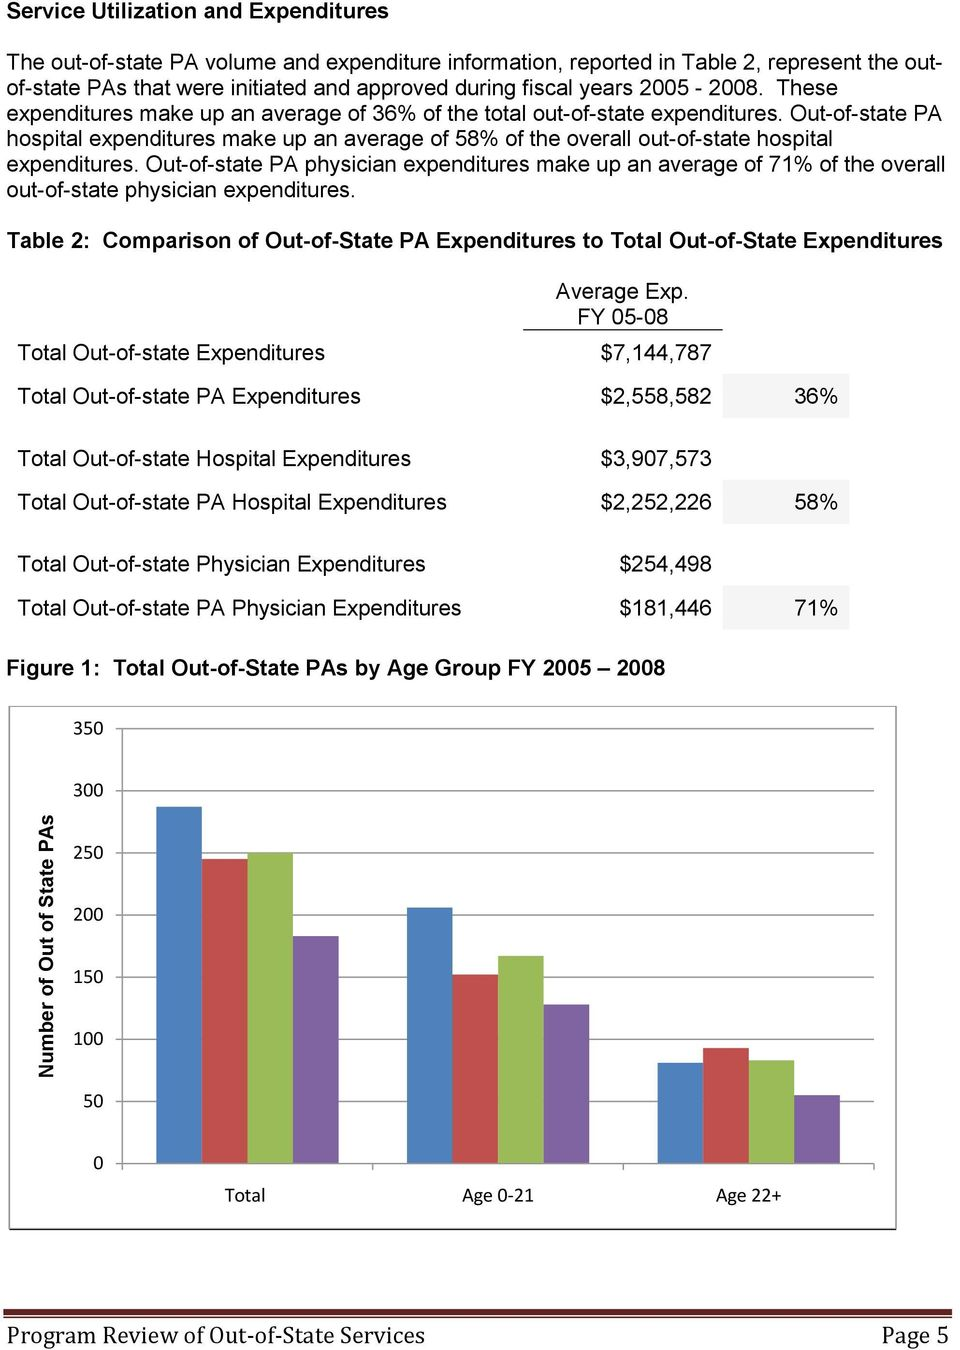 Out-of-state PA hospital expenditures make up an average of 58% of the overall out-of-state hospital expenditures.